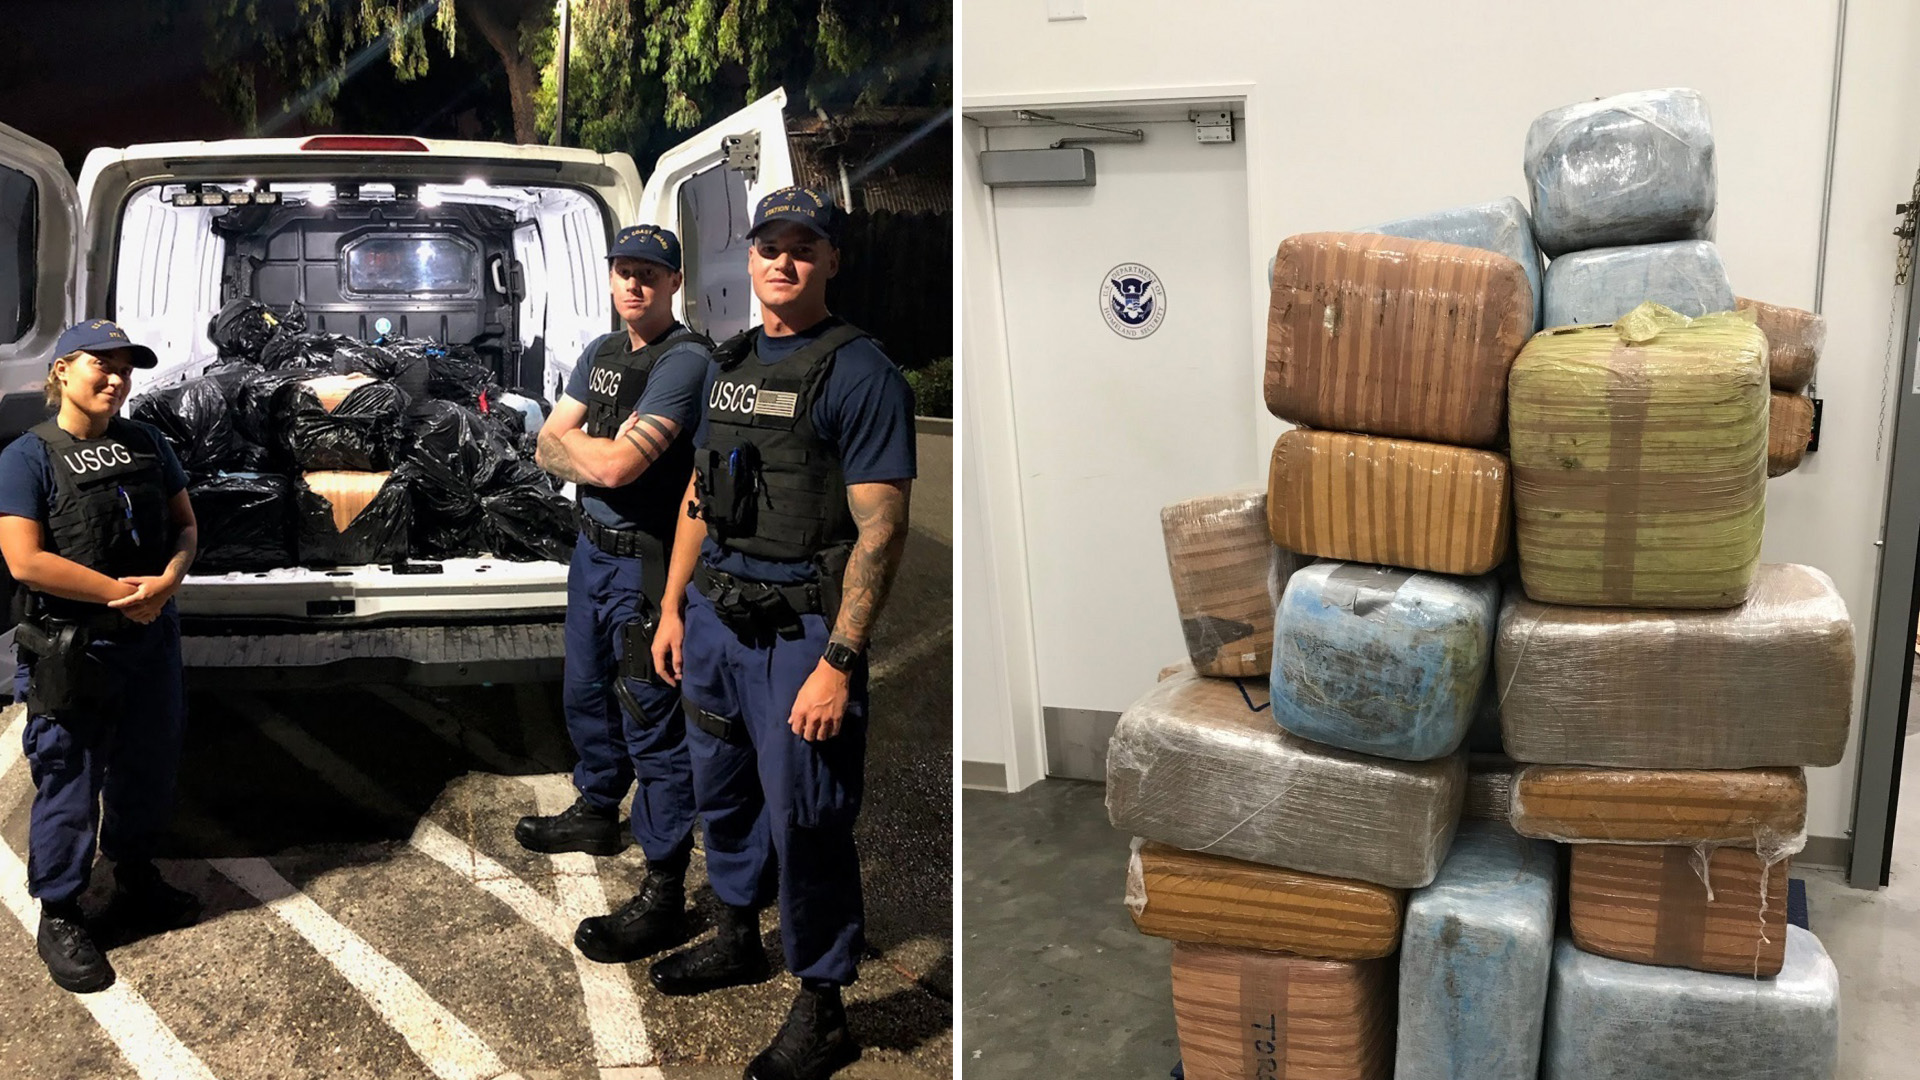 Officers from the U.S. Coast Guard's Los Angeles-Long Beach station stand near a van filled with about 1,300 pounds of marijuana seized near Catalina Island on Aug. 13, 2019. (Credit: U.S. Coast Guard)